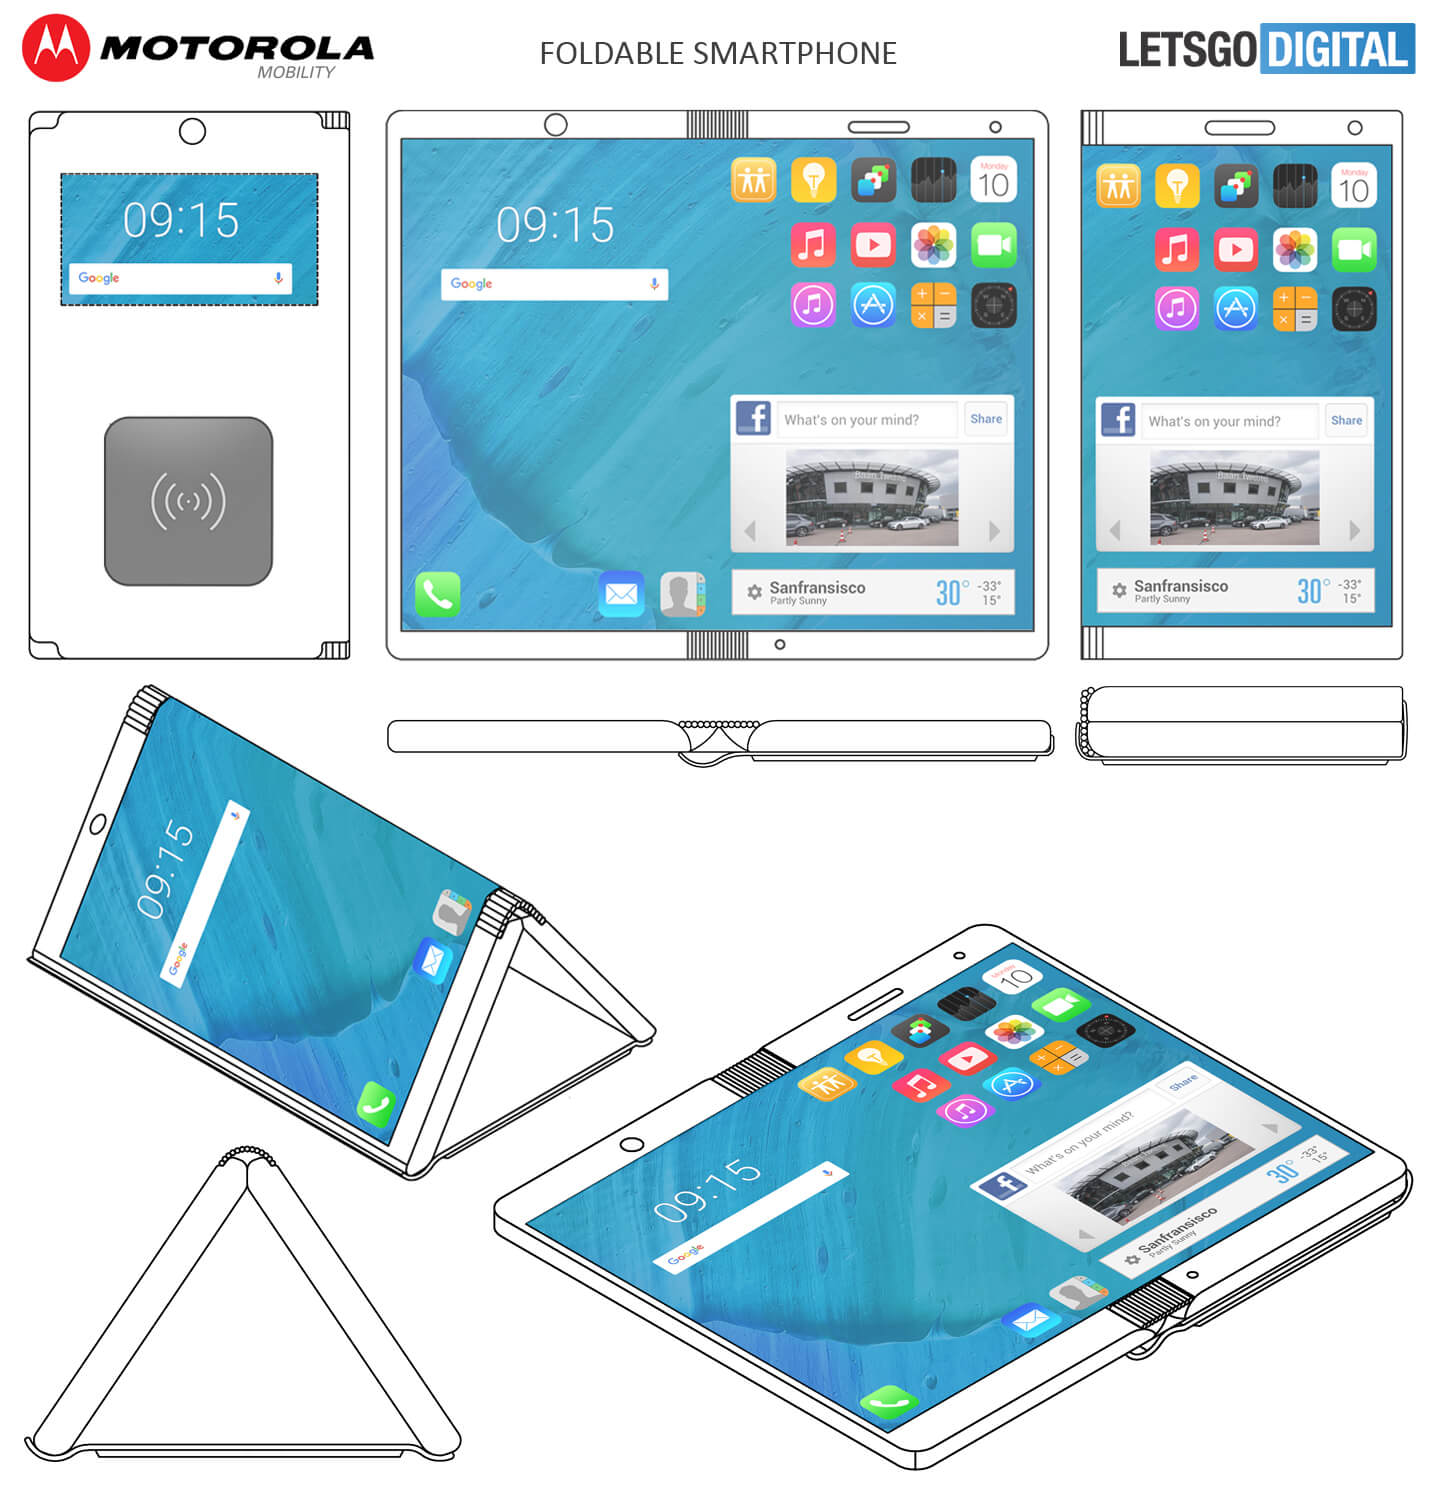 Motorola patents a foldable smartphone that unfolds into a tablet